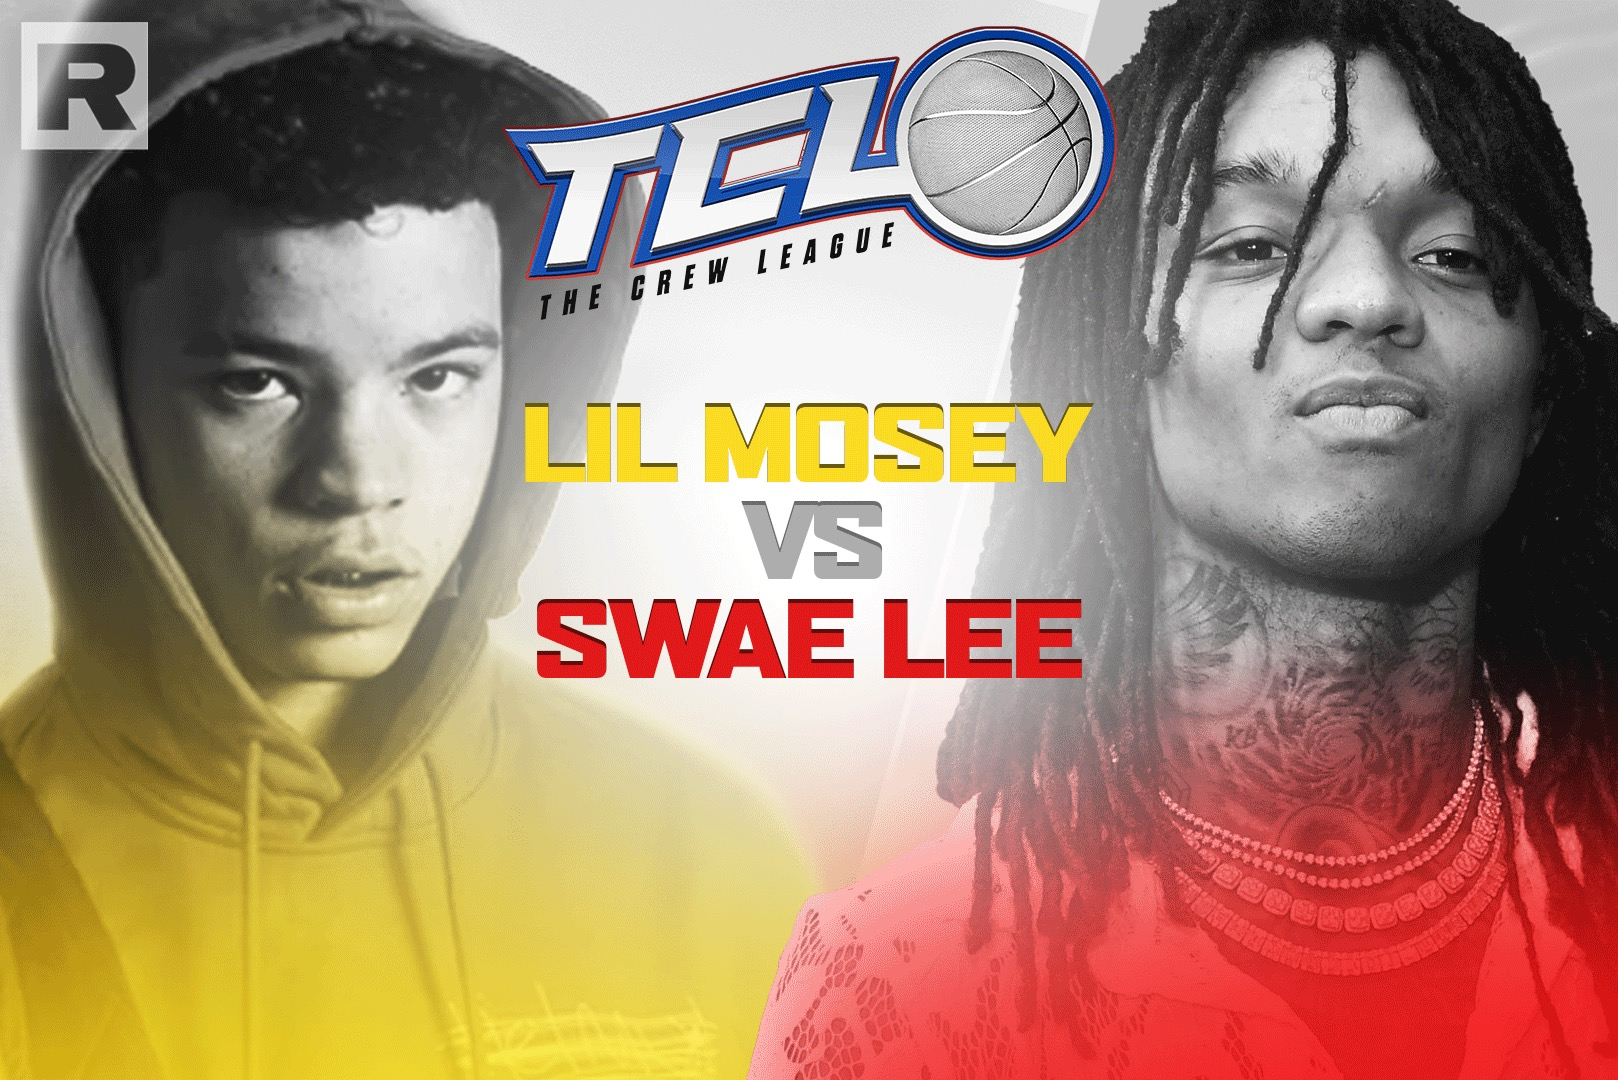 Swae Lee and Lil Mosey - The Crew League